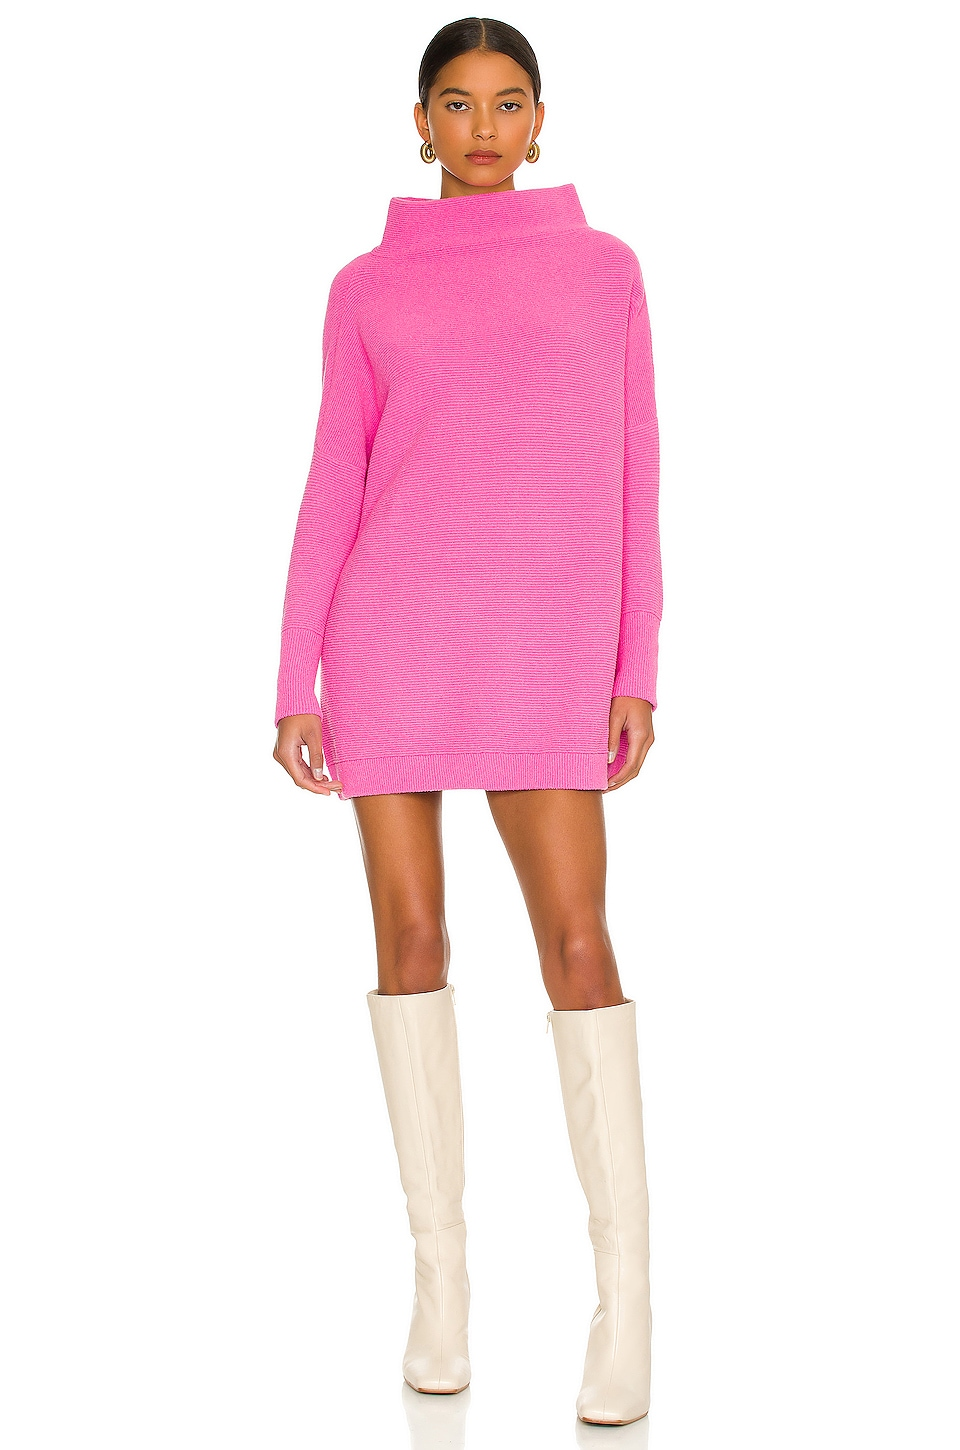 Free People Ottoman Slouchy Tunic Sweater Dress in Pink | REVOLVE